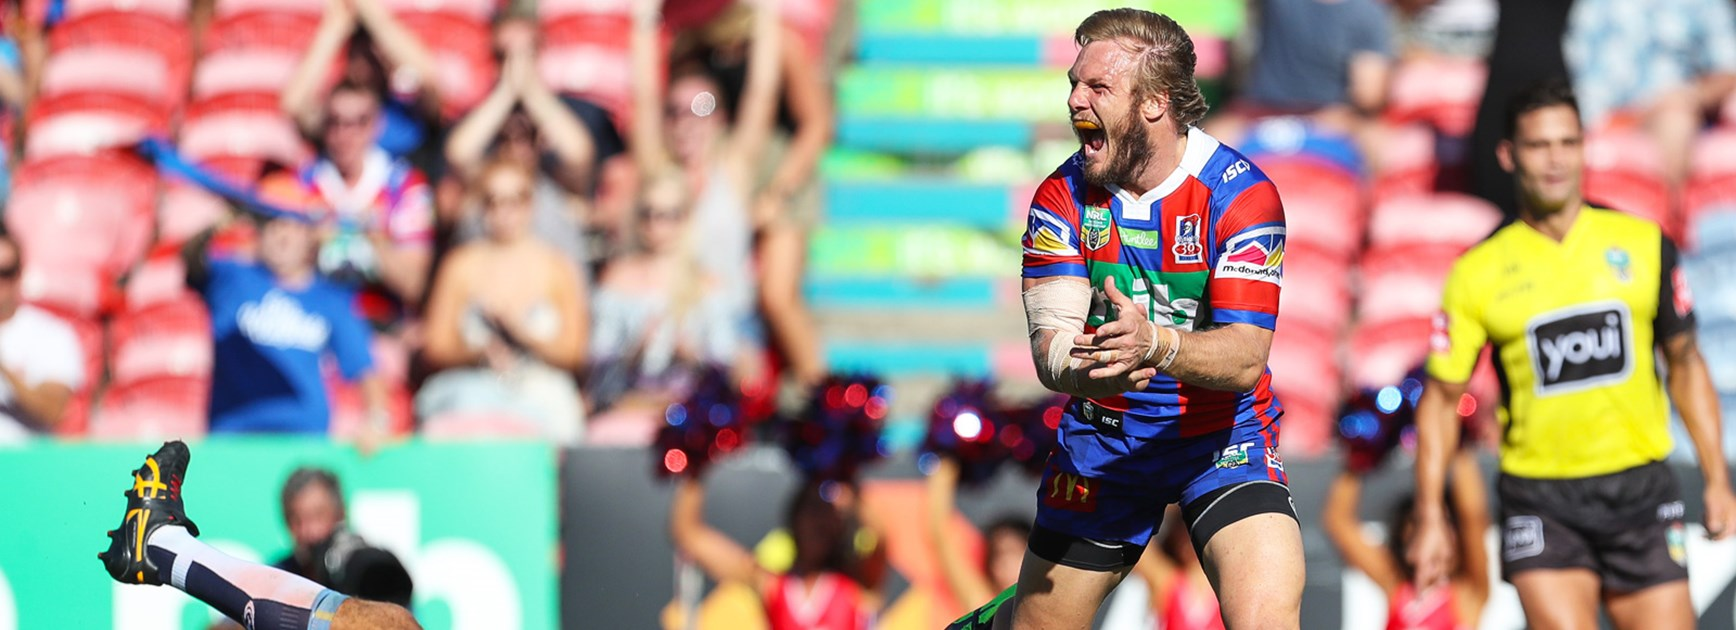 Nathan Ross celebrates a try in the Knights' Round 2 win over the Titans.